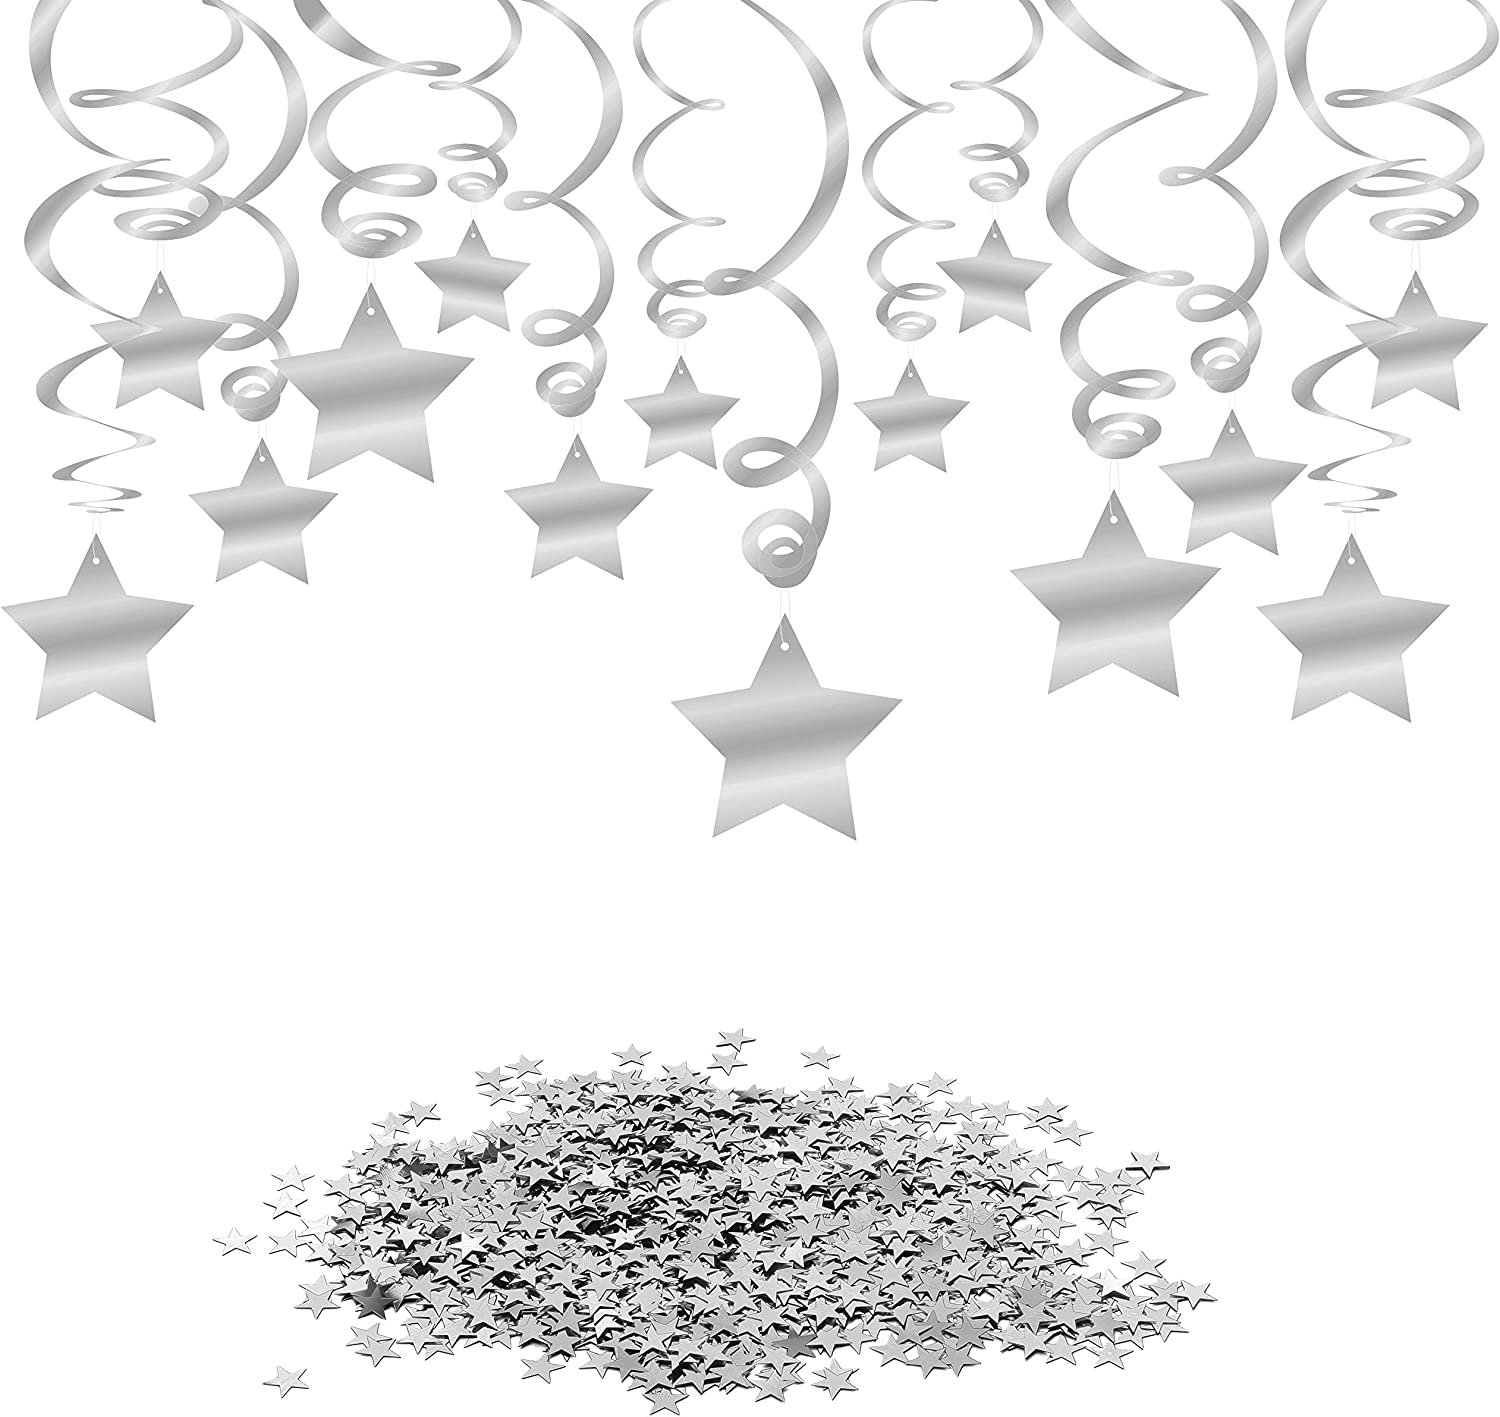 Konsait Hanging Swirl Silver Decorations(30 Counts) Silver Star Table Confetti(15 Gram), Silver Hanging Party Supplies for Wedding Shower Birthday Party Table Decor Twinkle Twinkle Baby Shower